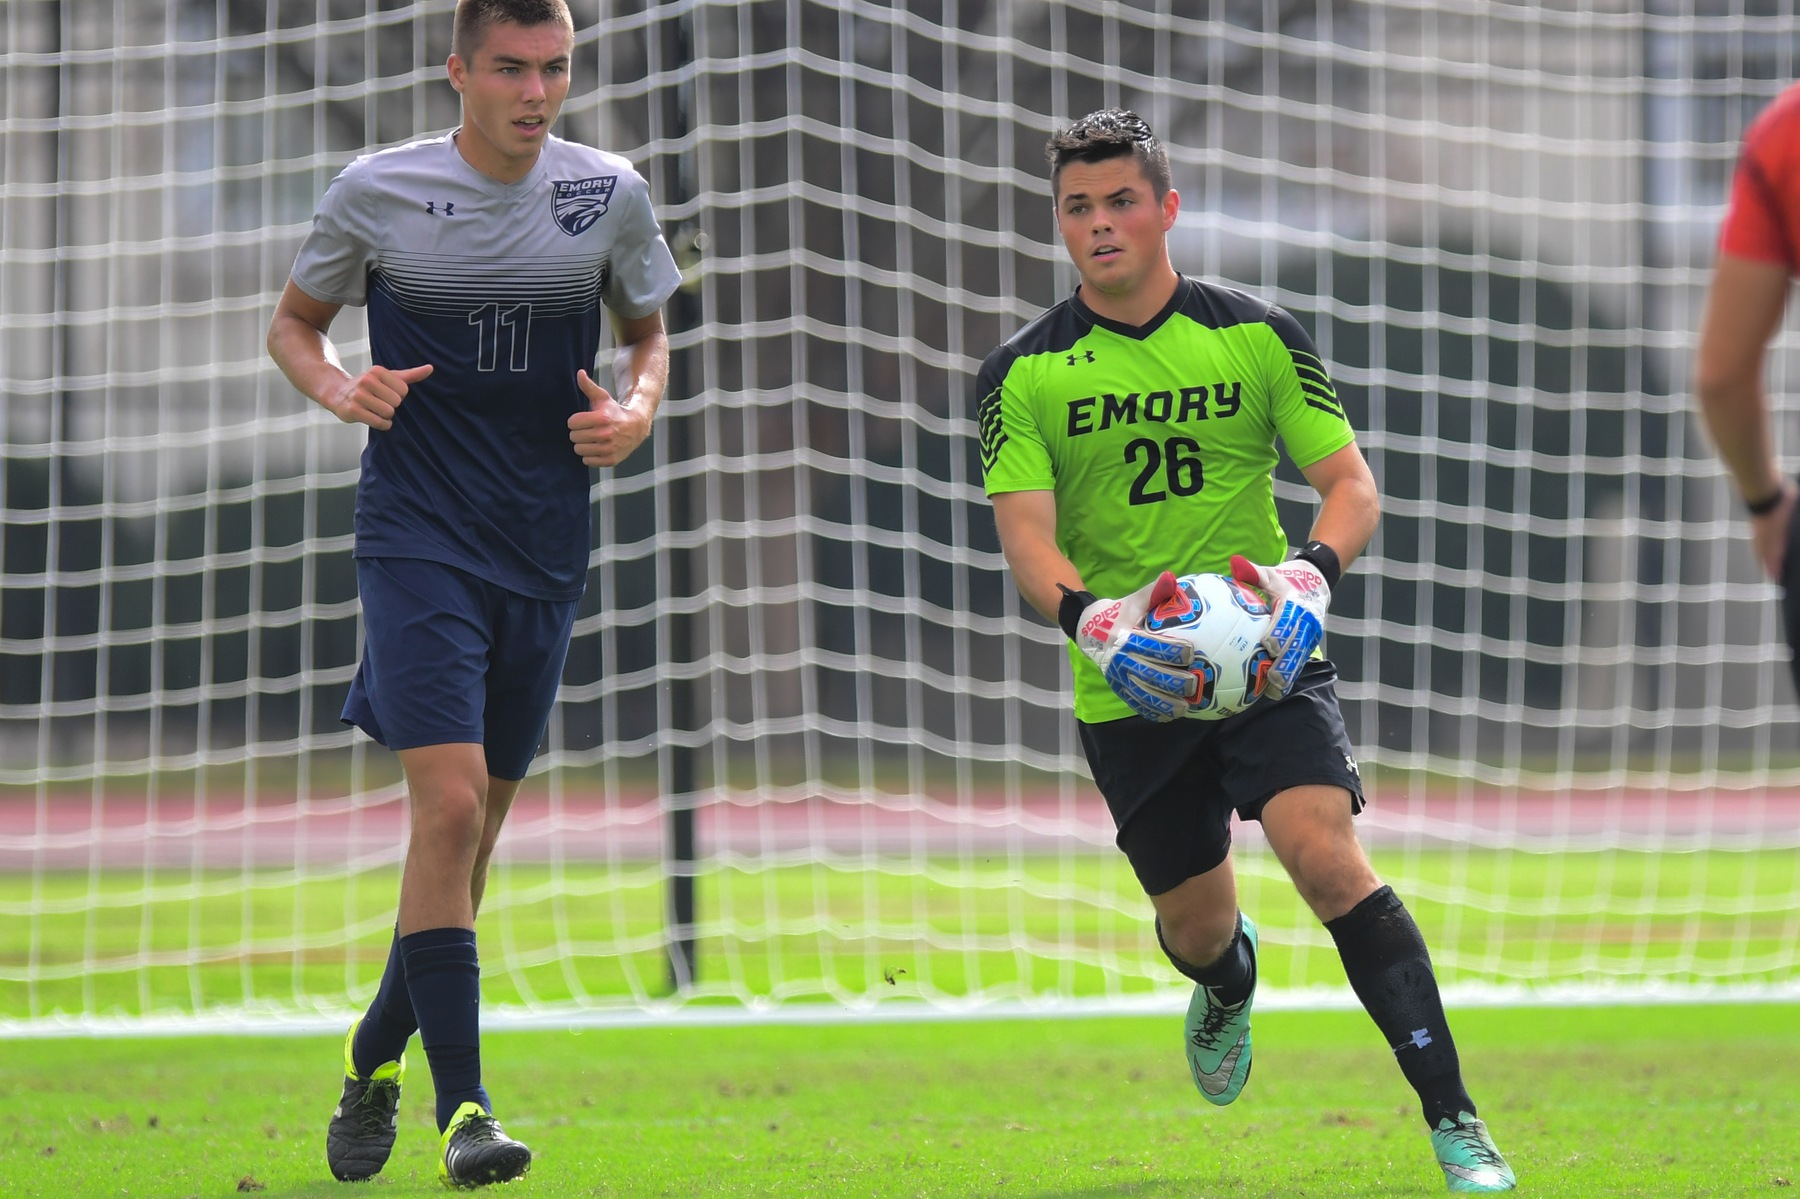 Emory Men's Soccer Rallies for 2-2 Draw at Carnegie Mellon